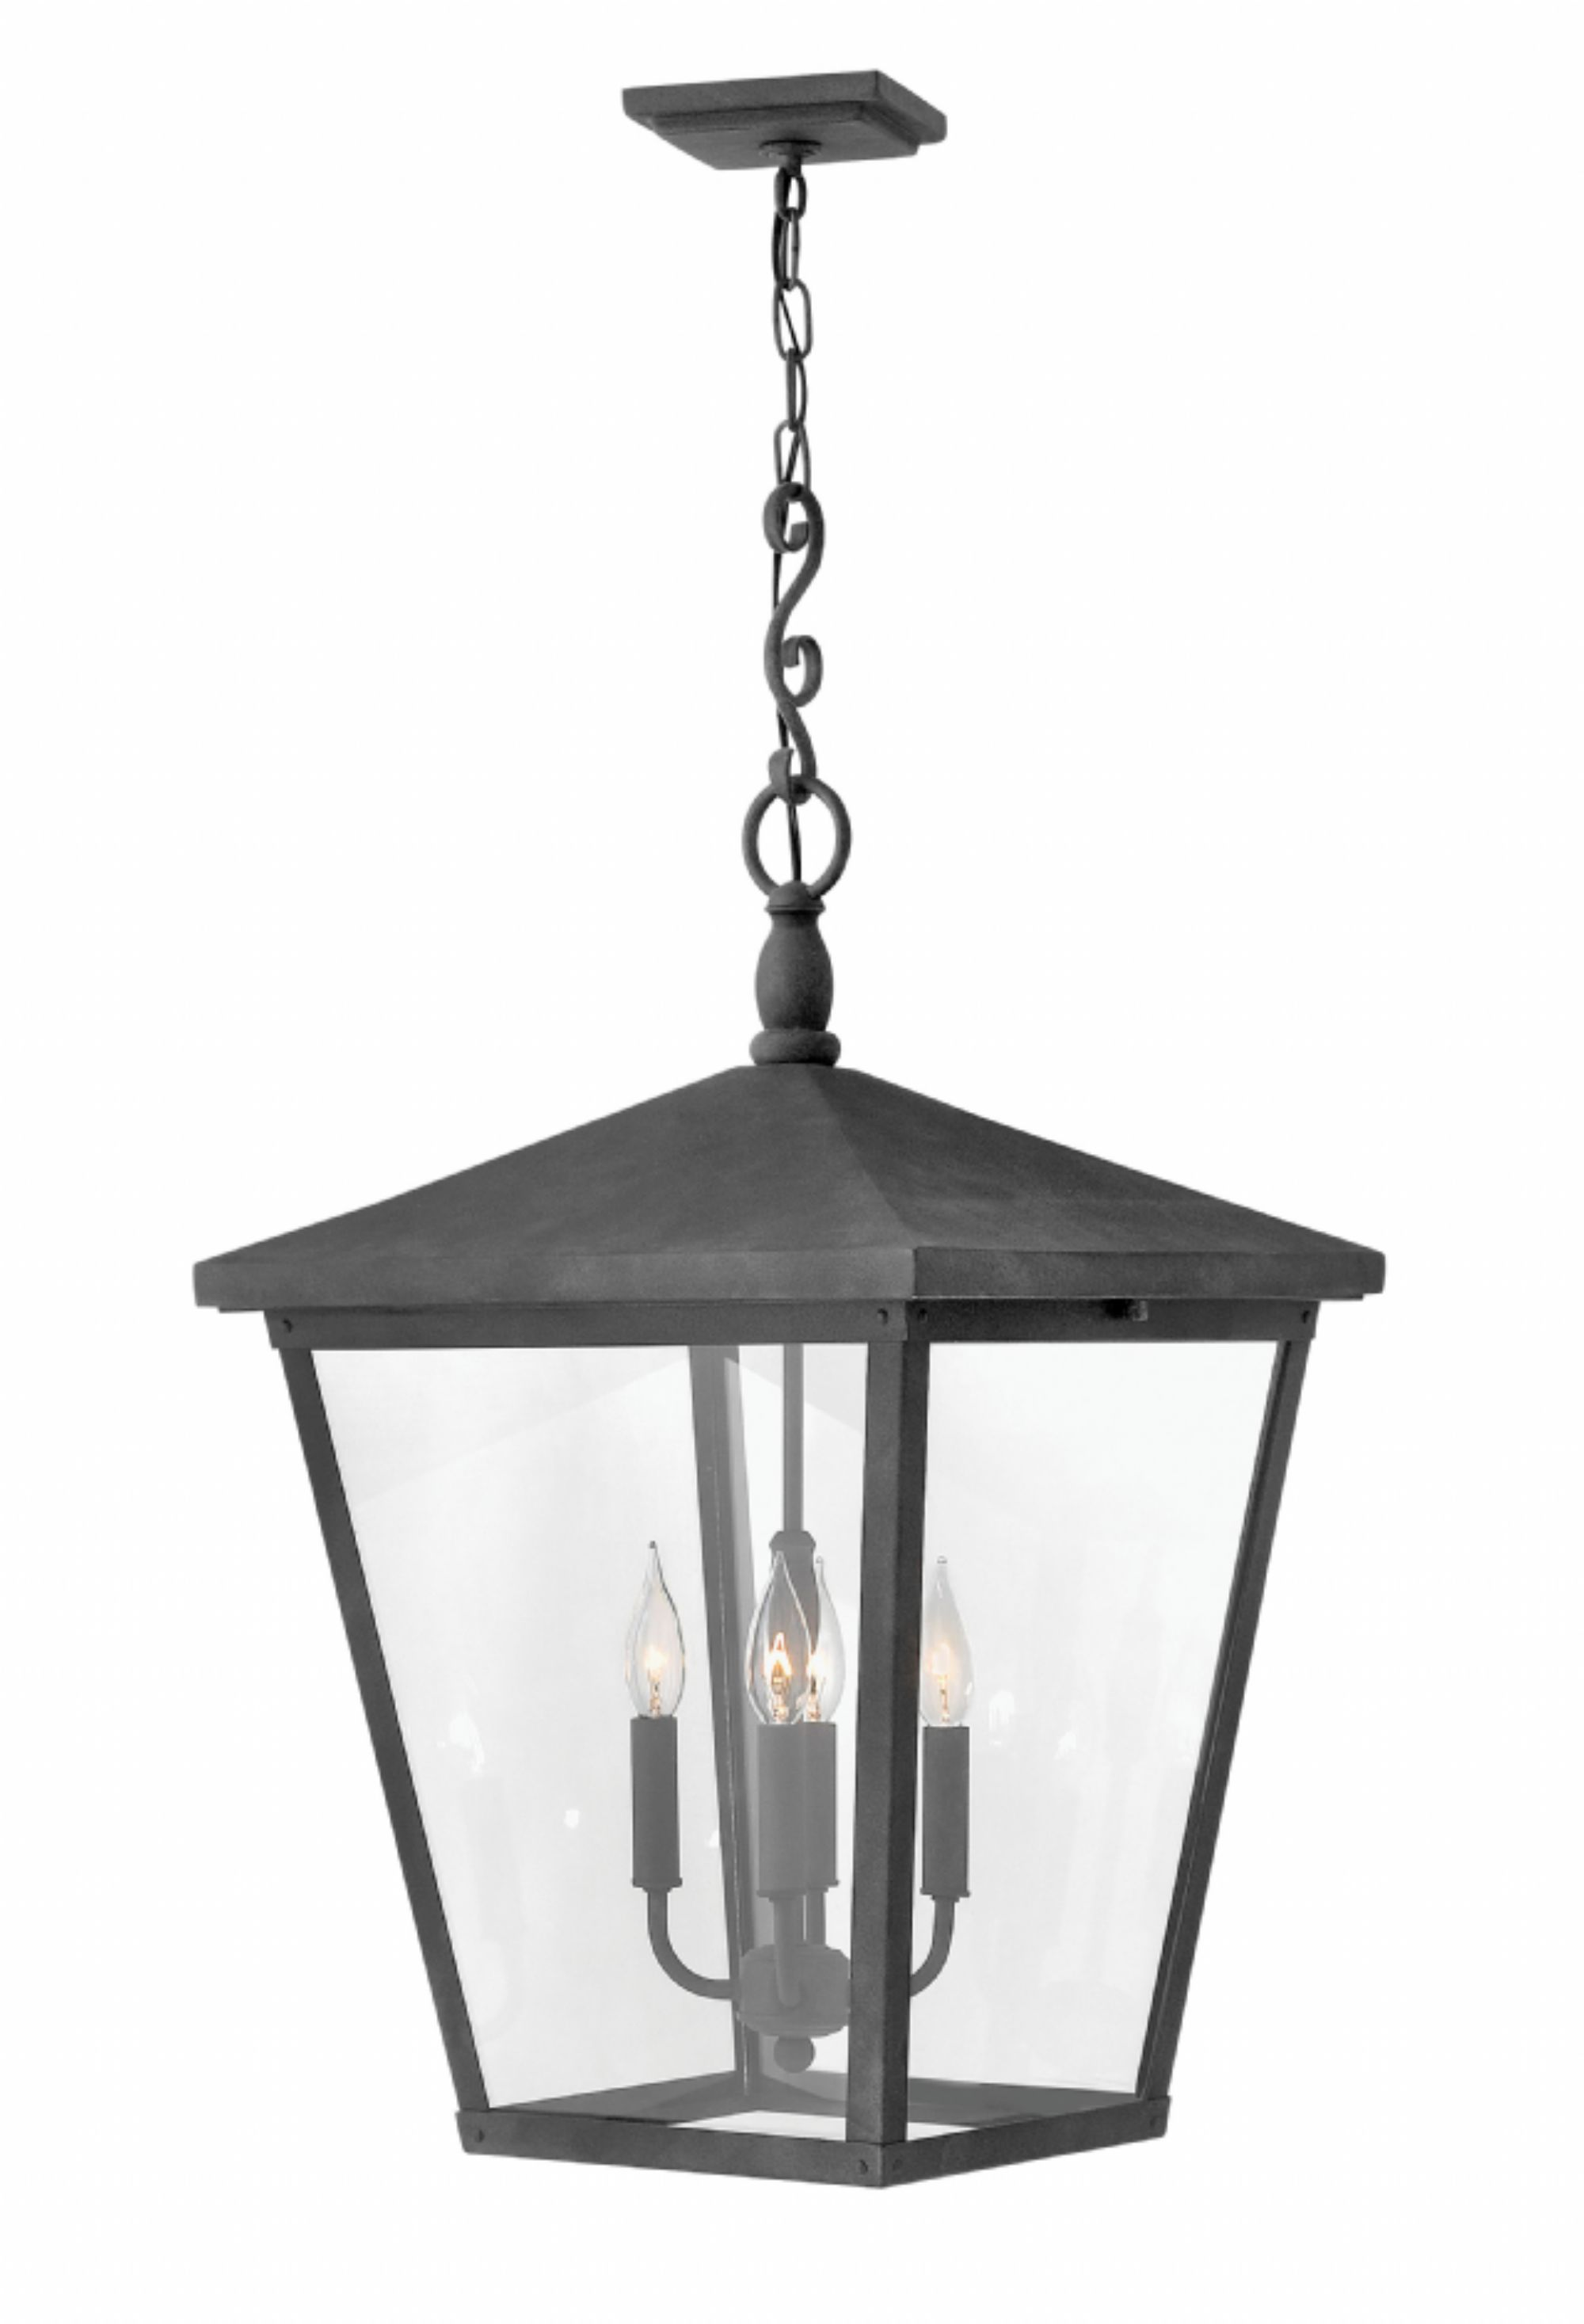 Hinkley Lighting Trellis 1428dz With Images Outdoor Hanging Lights Outdoor Hanging Lanterns Outdoor Pendant